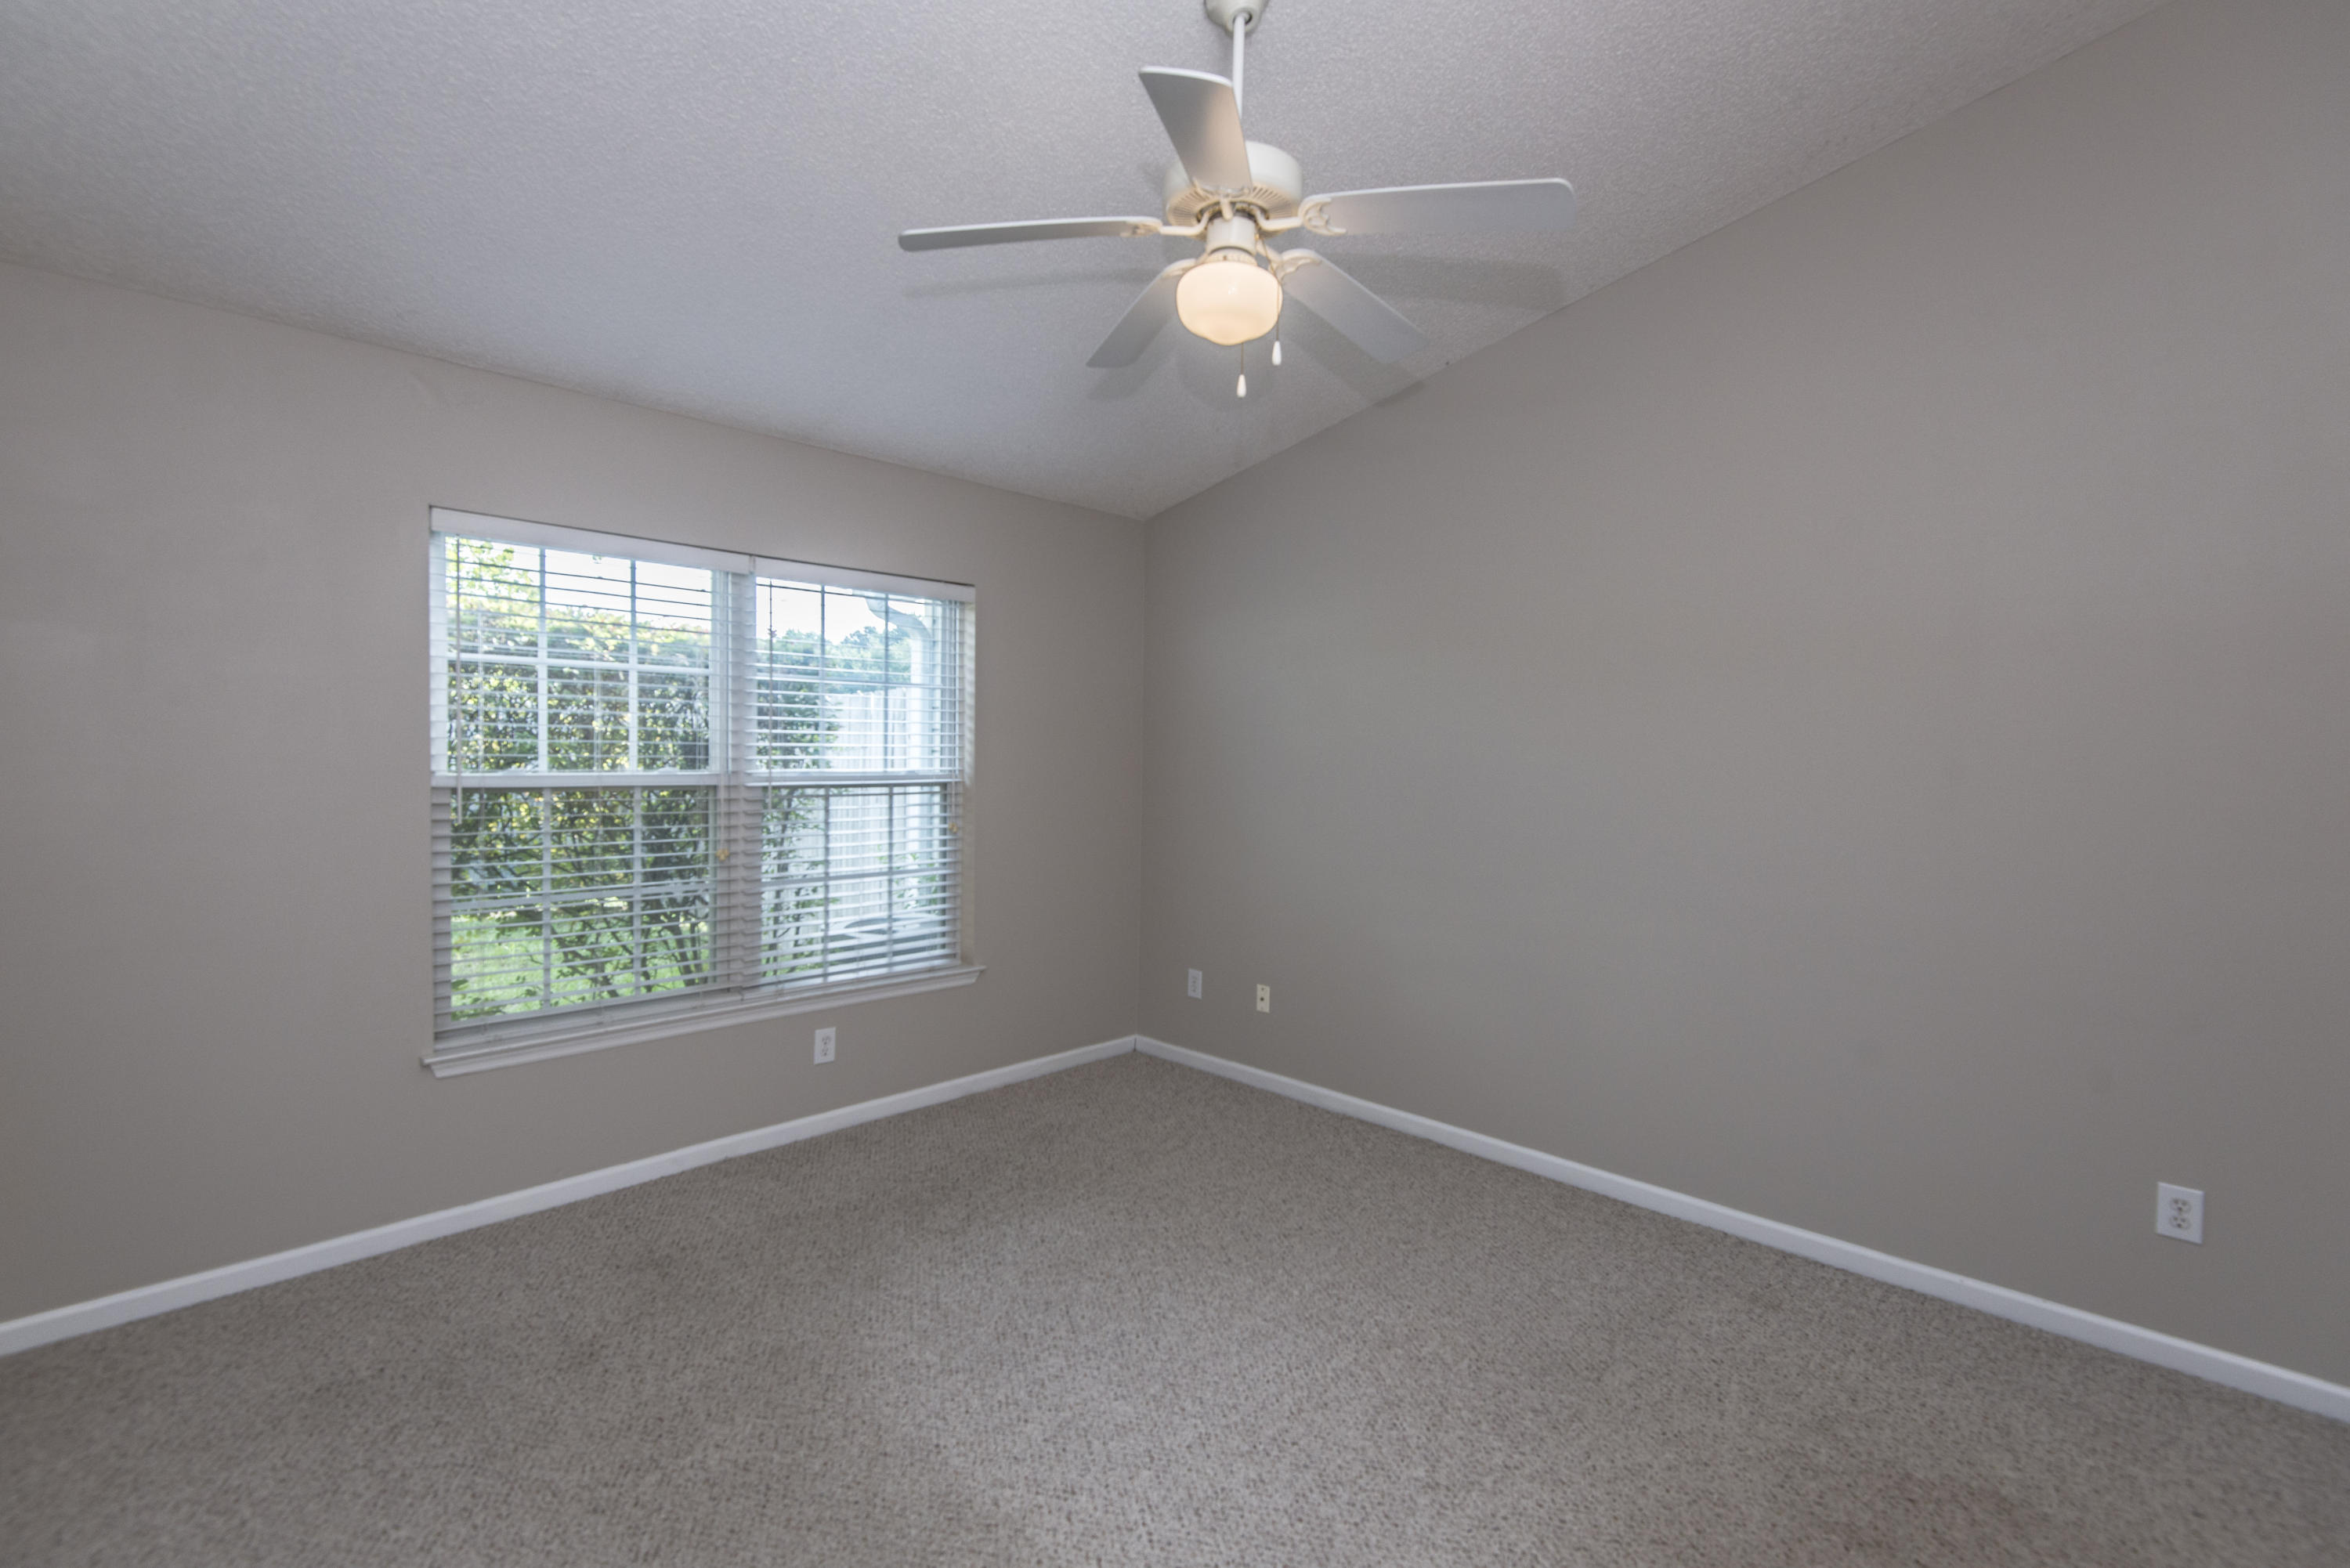 Meridian Place Homes For Sale - 1274 Apex, Charleston, SC - 12